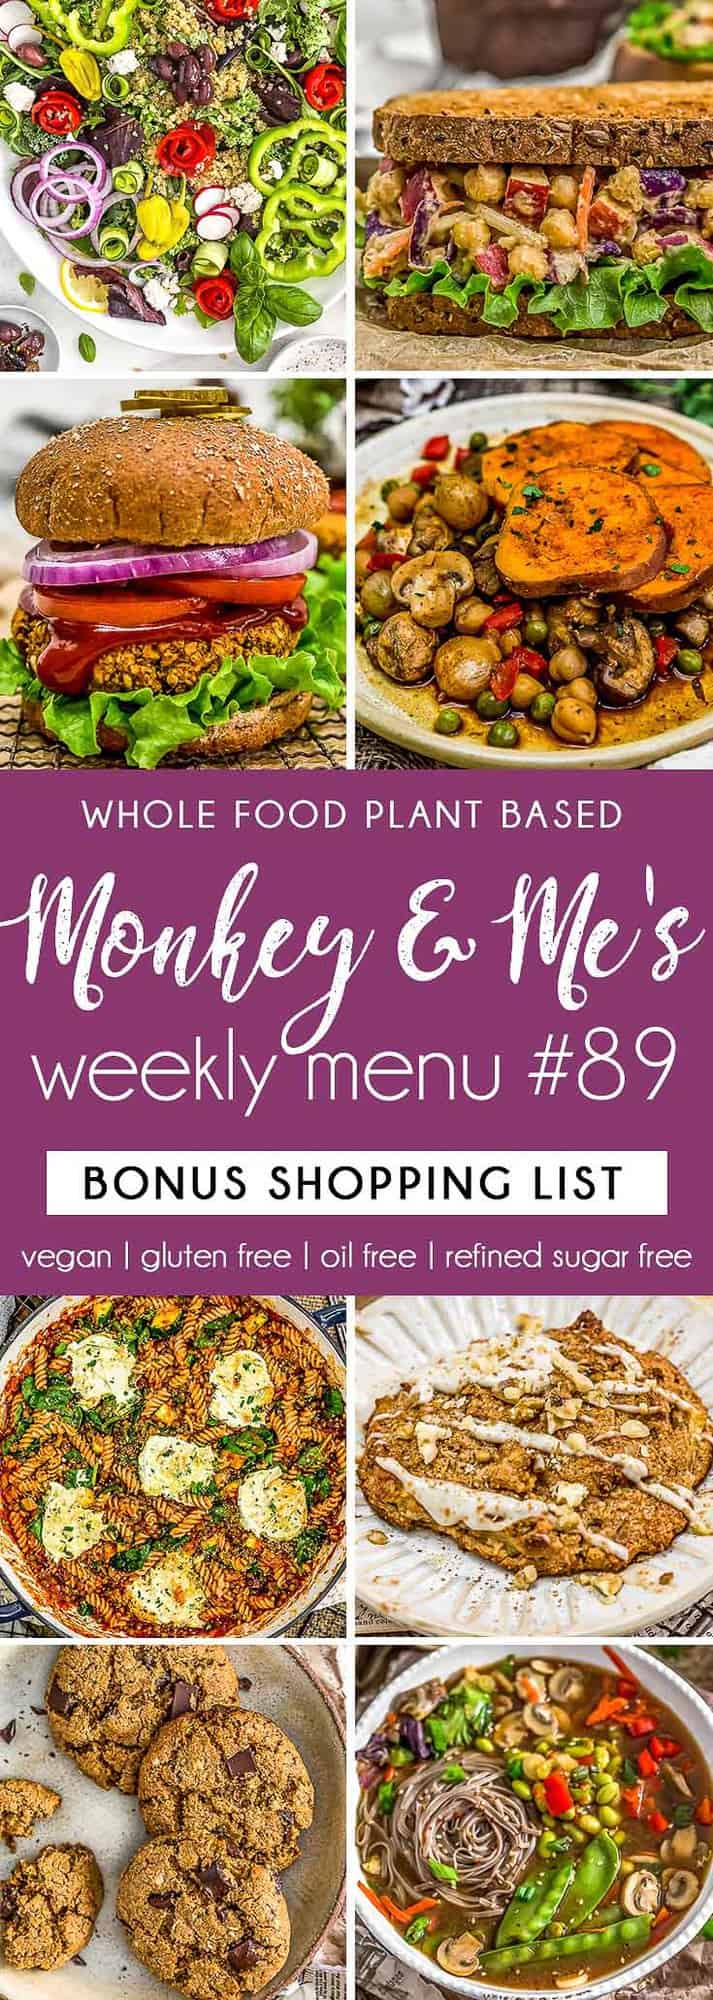 Monkey and Me's Menu 89 featuring 8 recipes